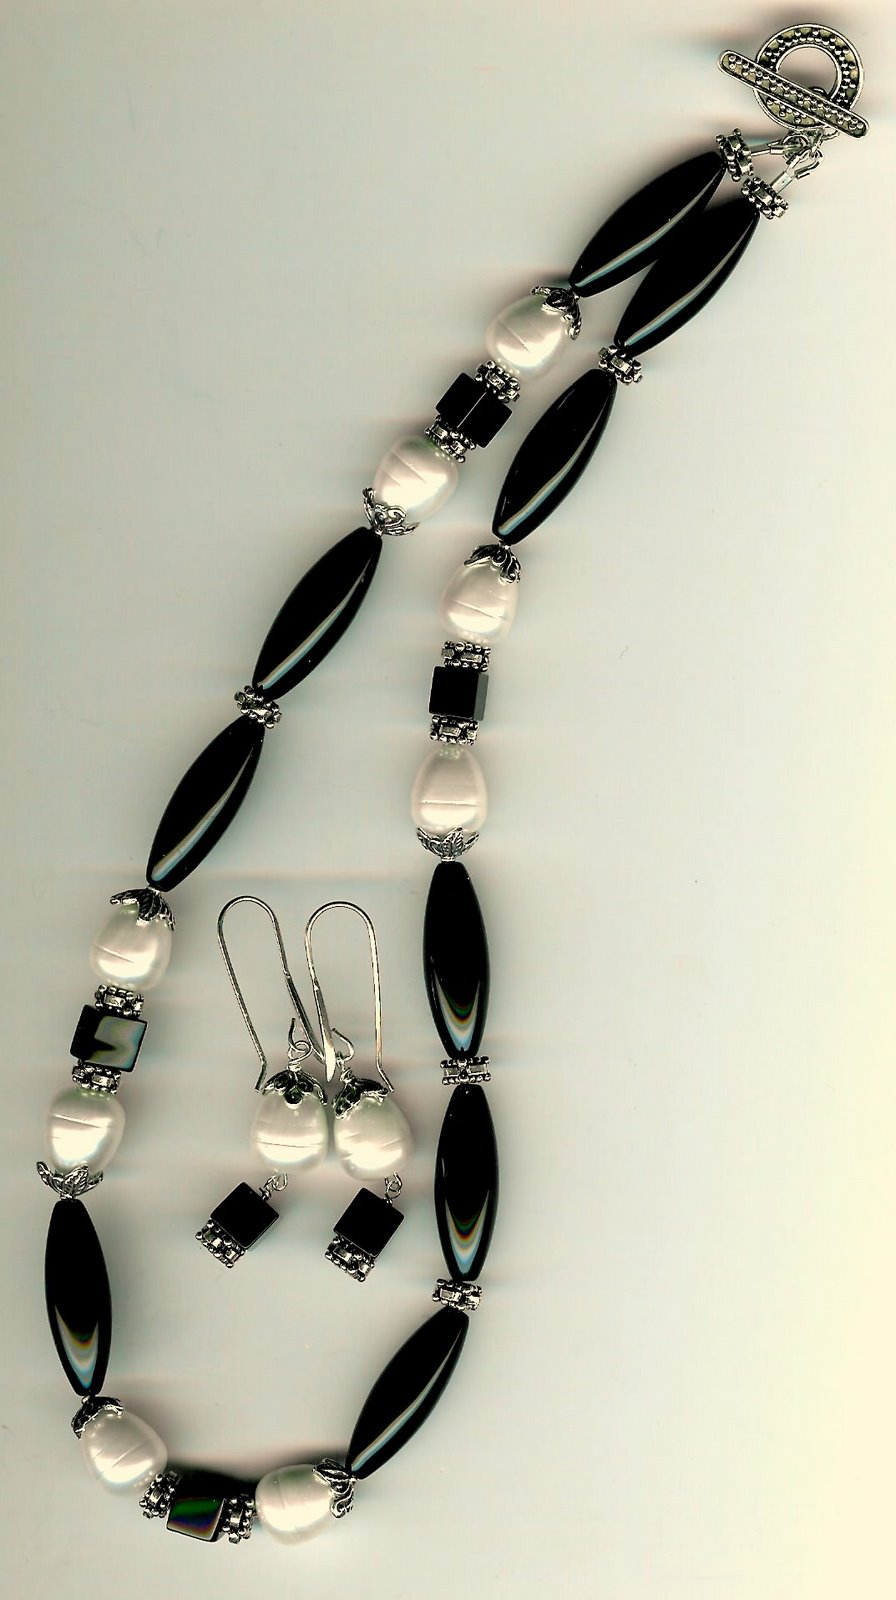 99. Onyx, Shell Pearls with Bali Sterling Siver + Earrings